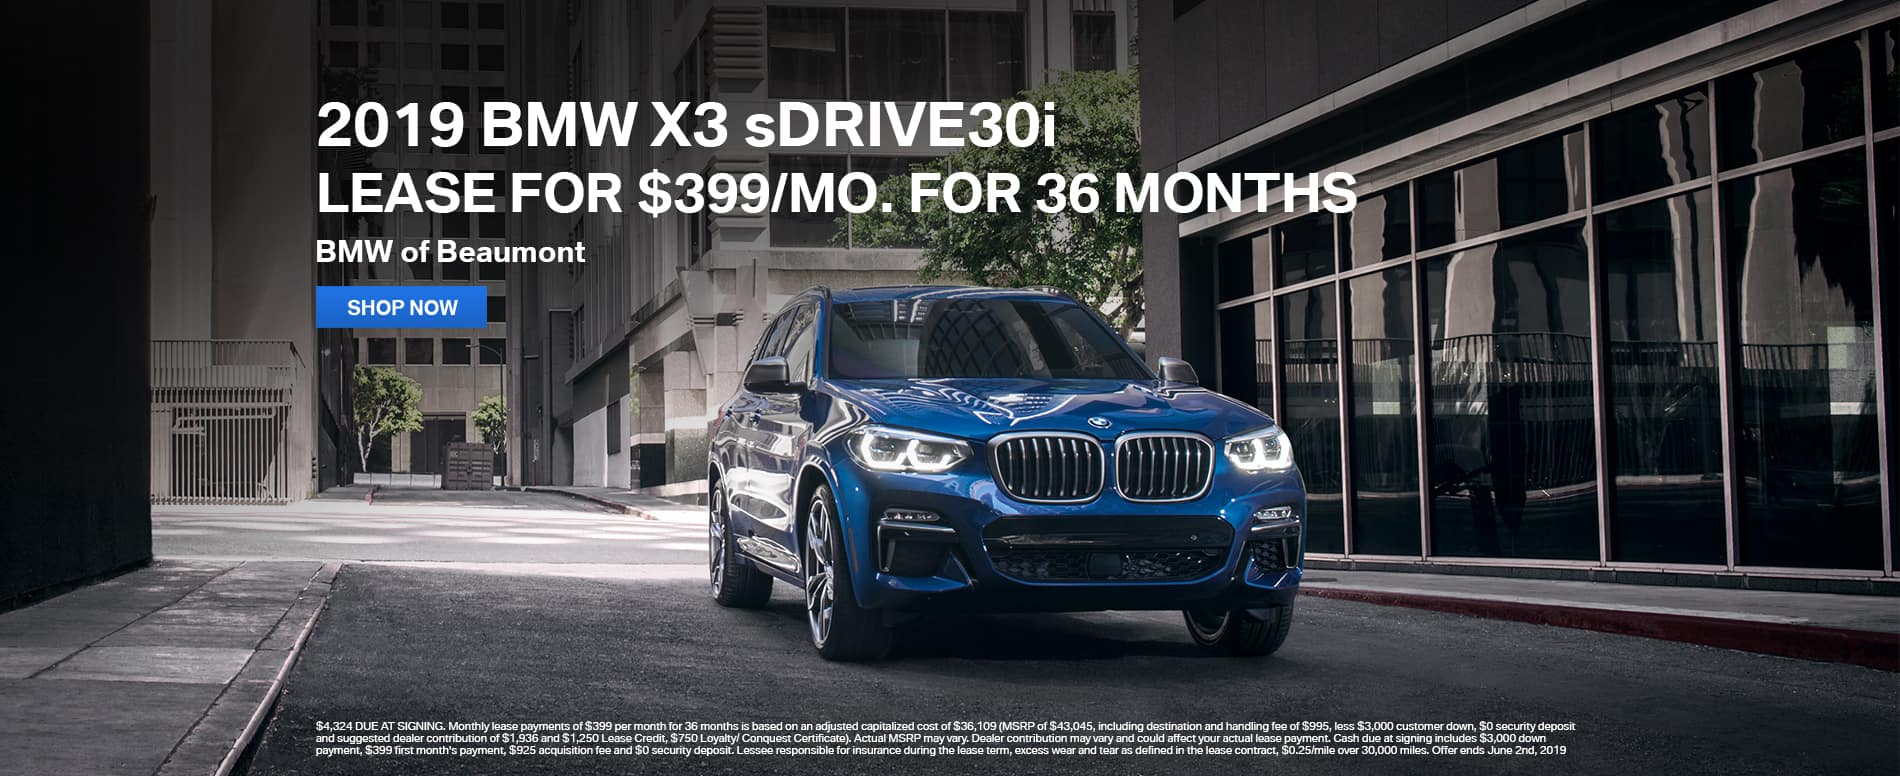 lease-2019-bmw-x3-sdrive30i-for-399-per-month-beaumont